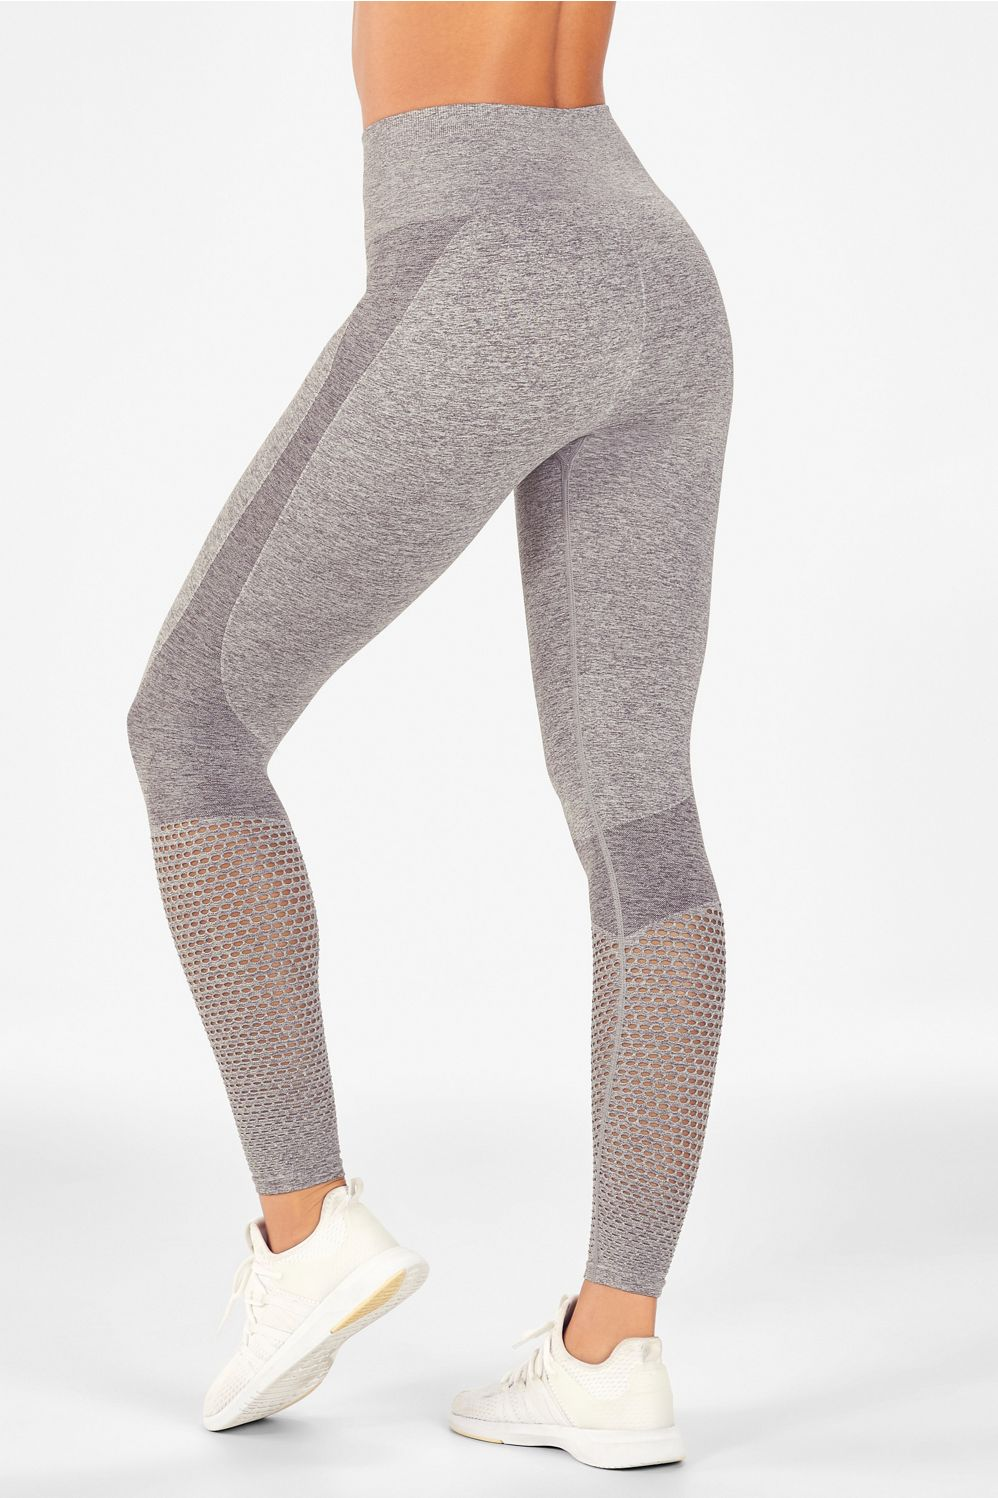 cc7b5f3a7d4aa Seamless High-Waisted Mesh Legging - Grey Heather